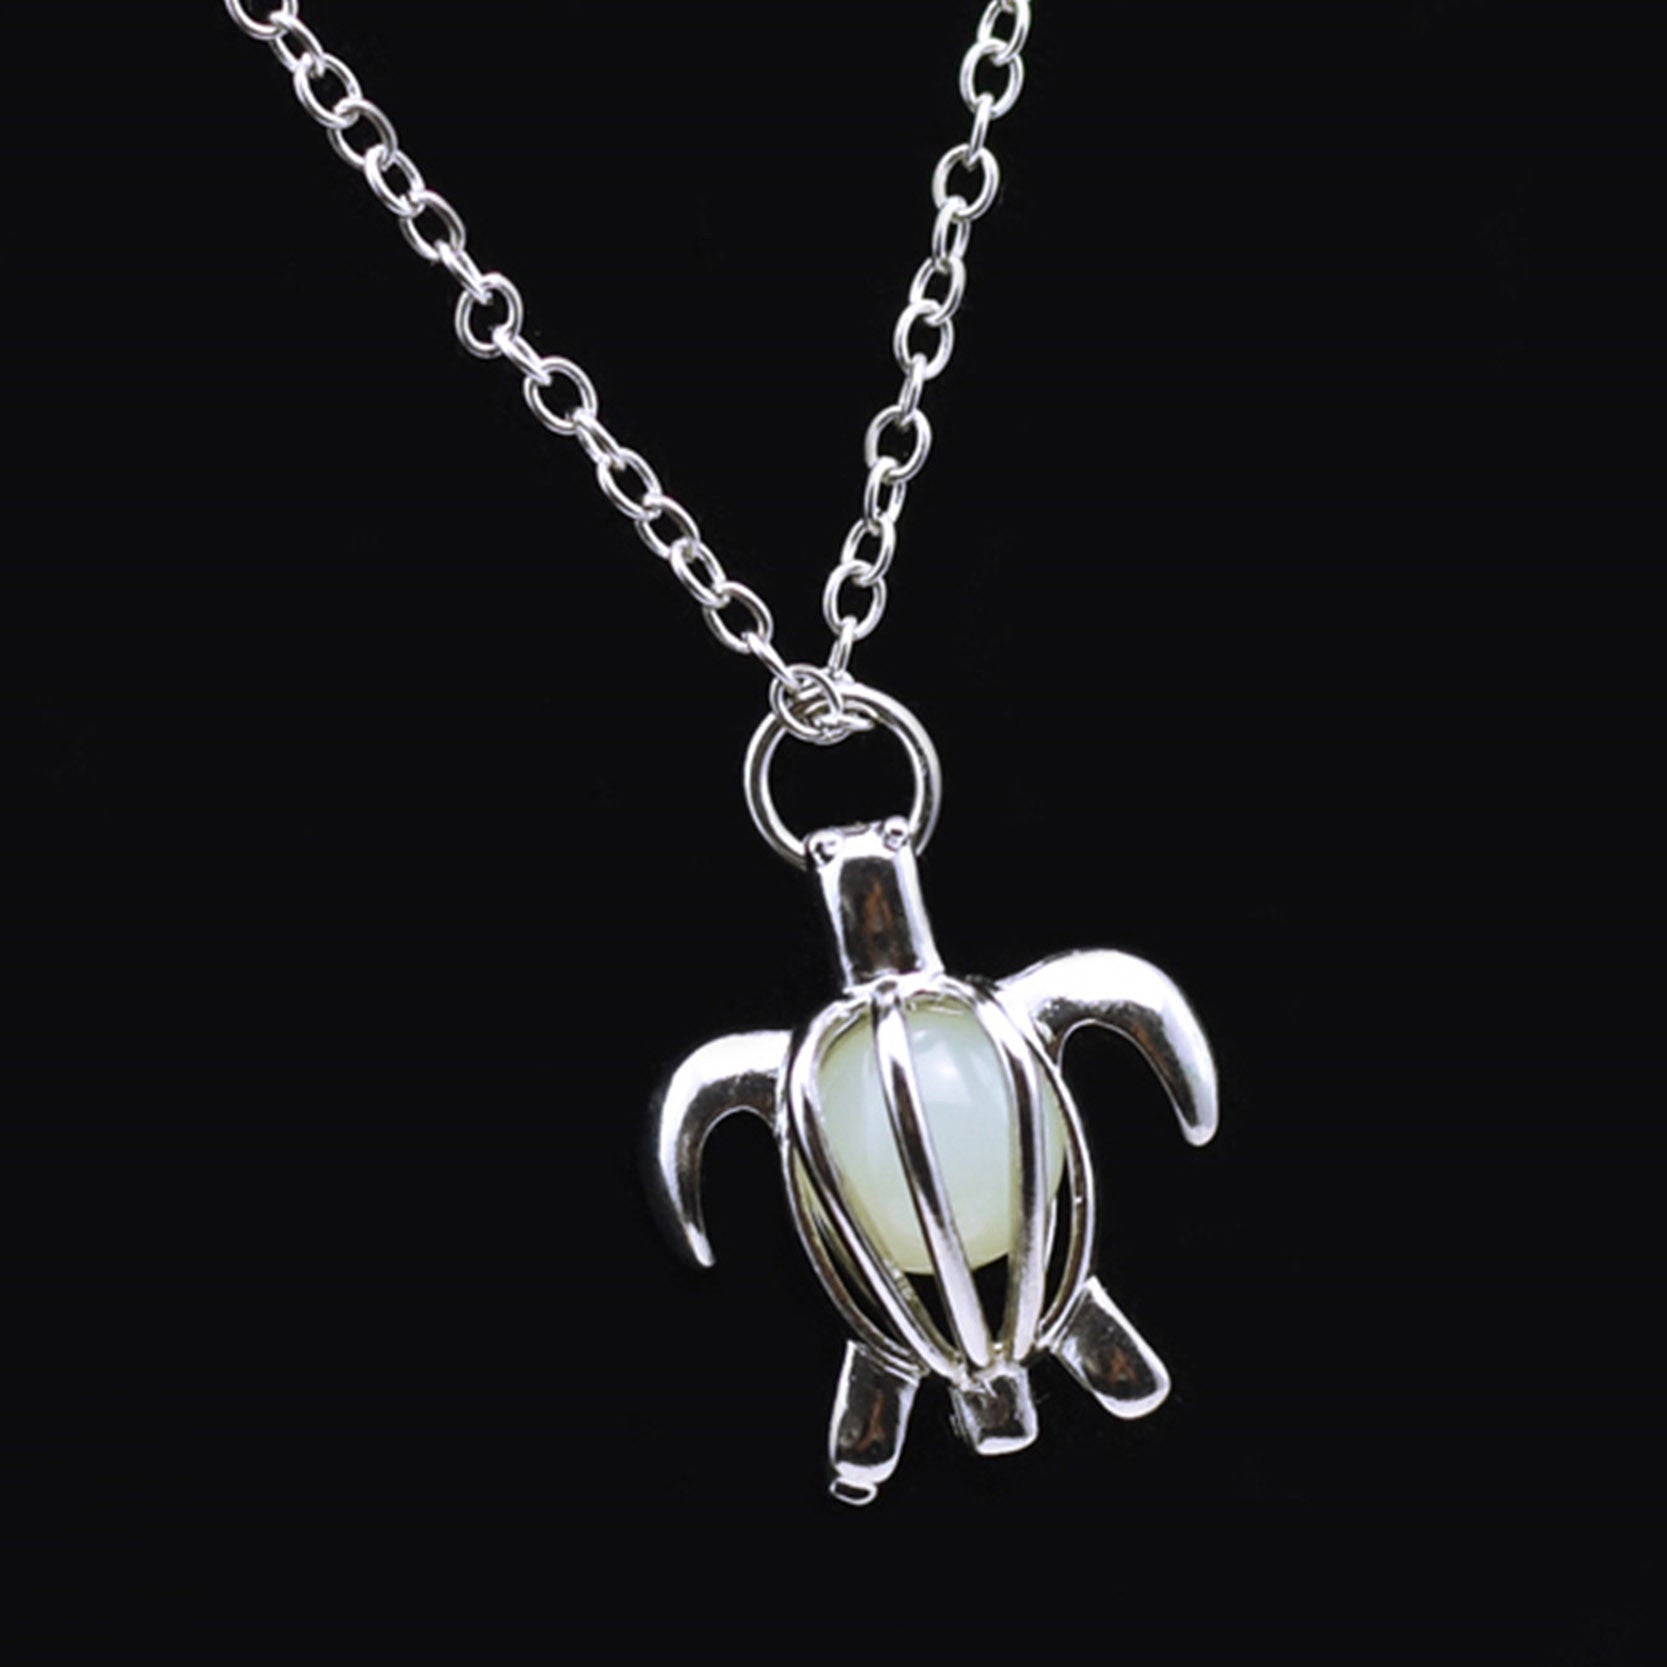 Glow in the dark turtle necklace save envy glow in the dark turtle necklace aloadofball Gallery